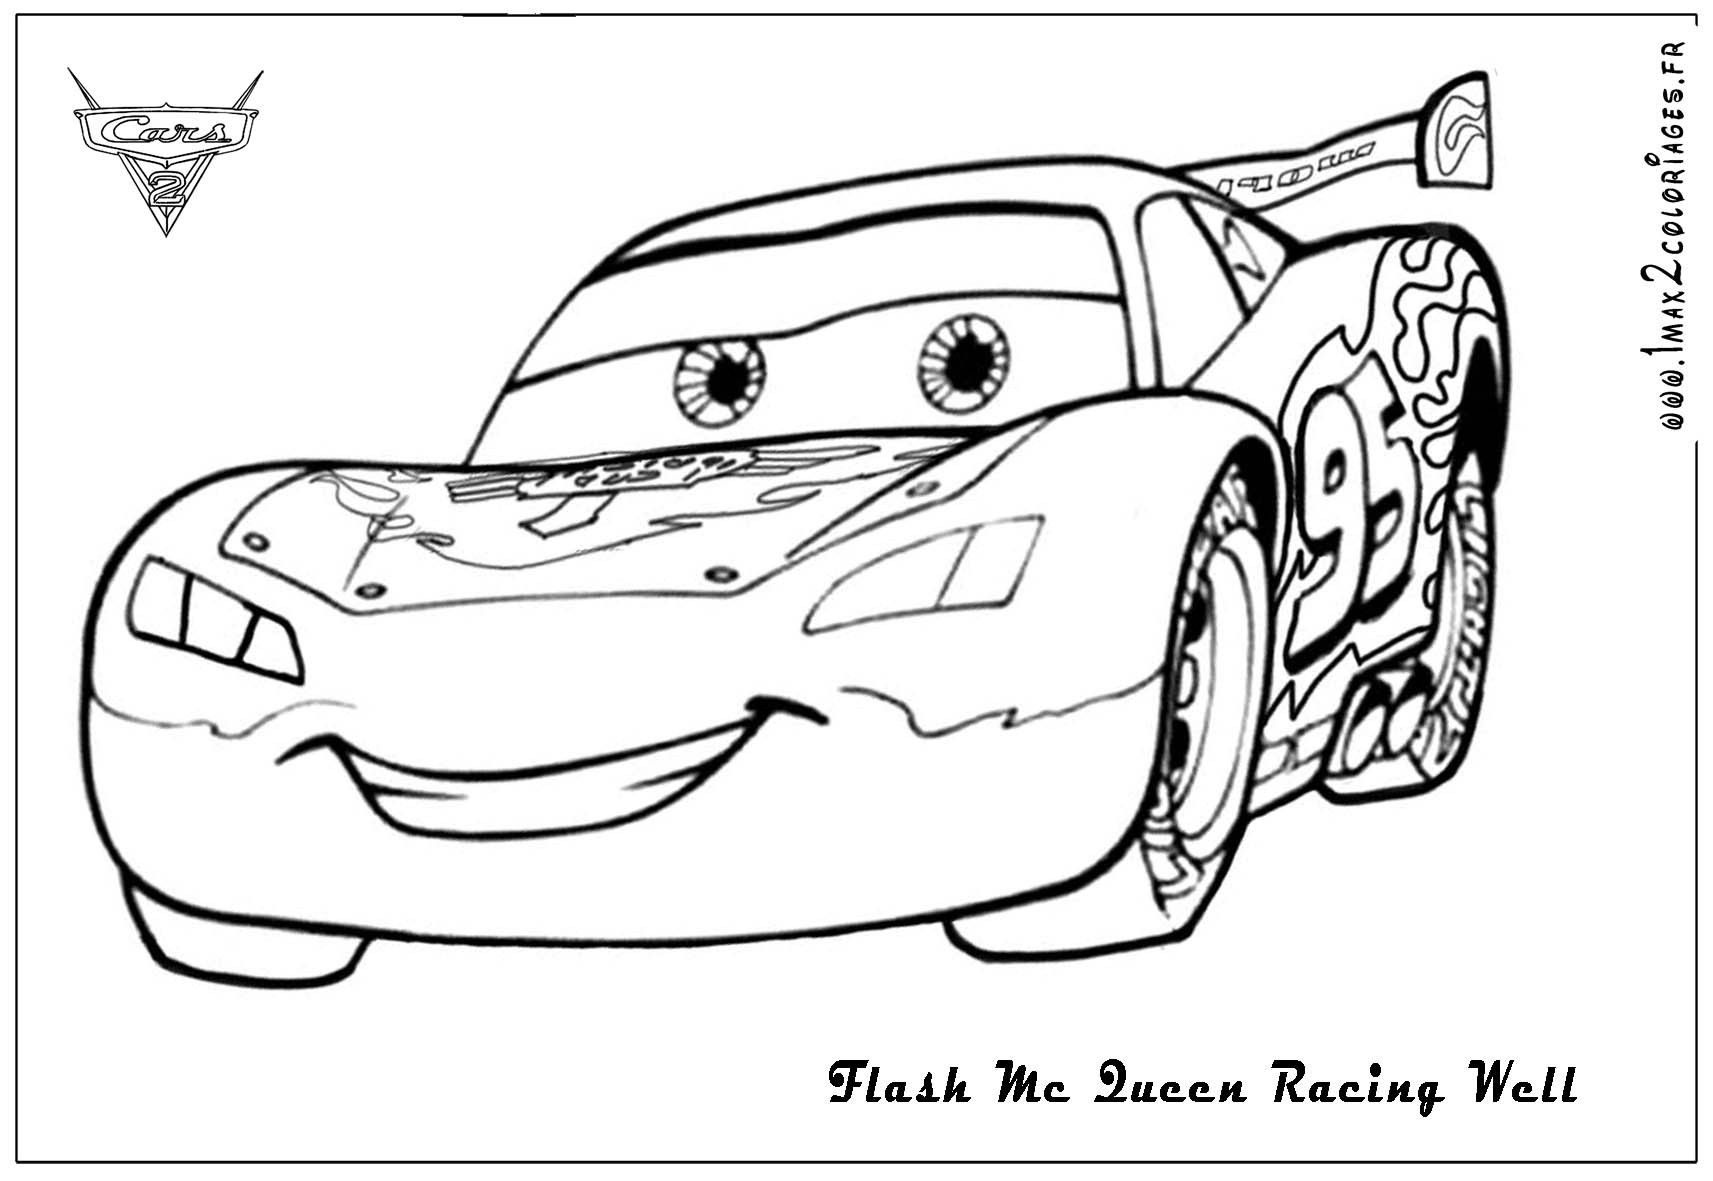 Cars Coloring Pages Online | Everyone Loves to Color :O) | Pinterest